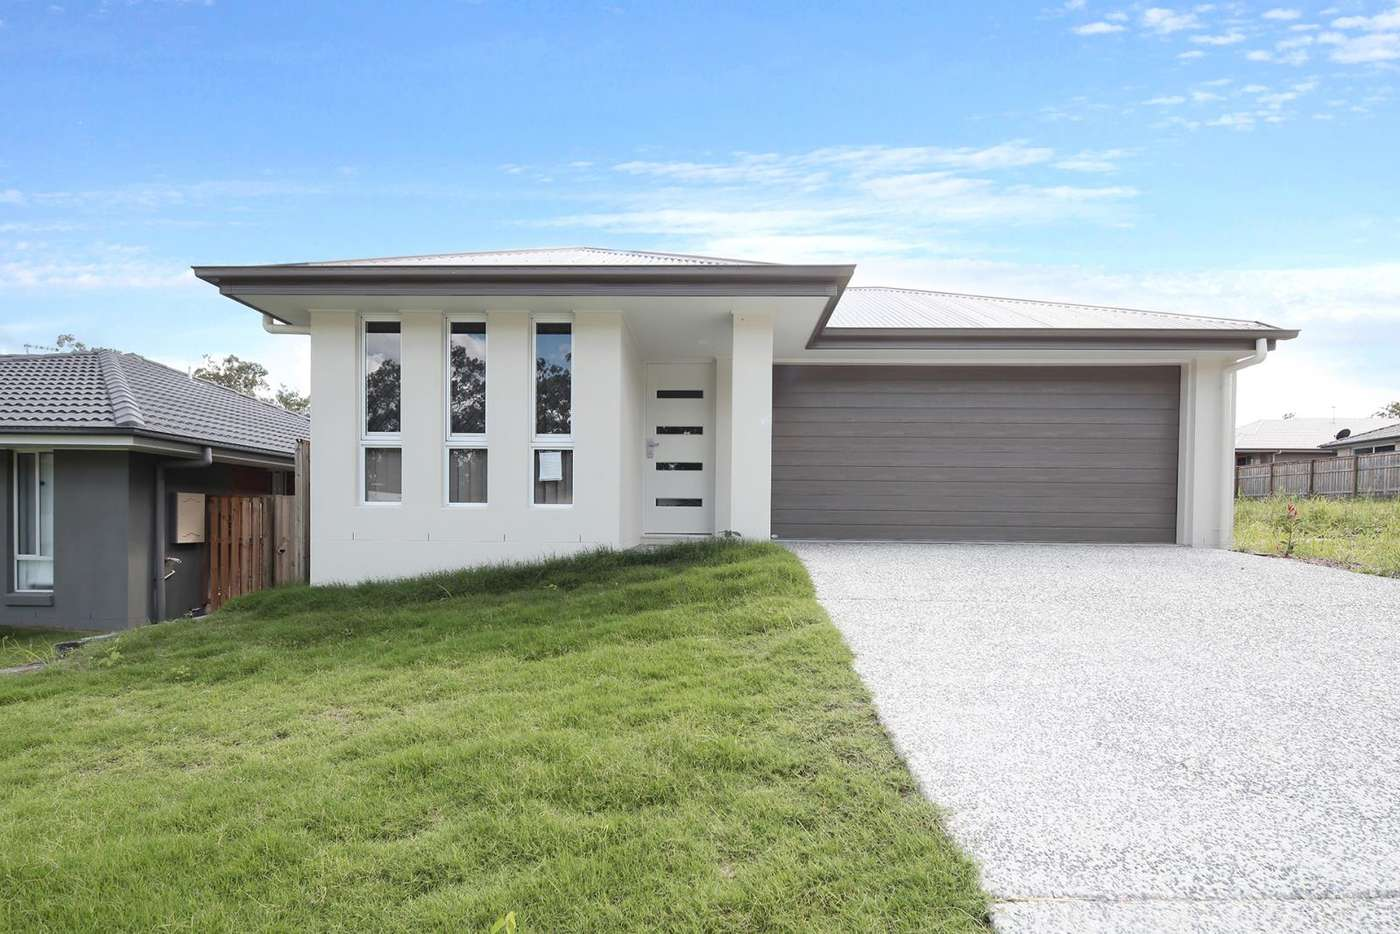 Main view of Homely house listing, 6 Kains Avenue, Brassall QLD 4305